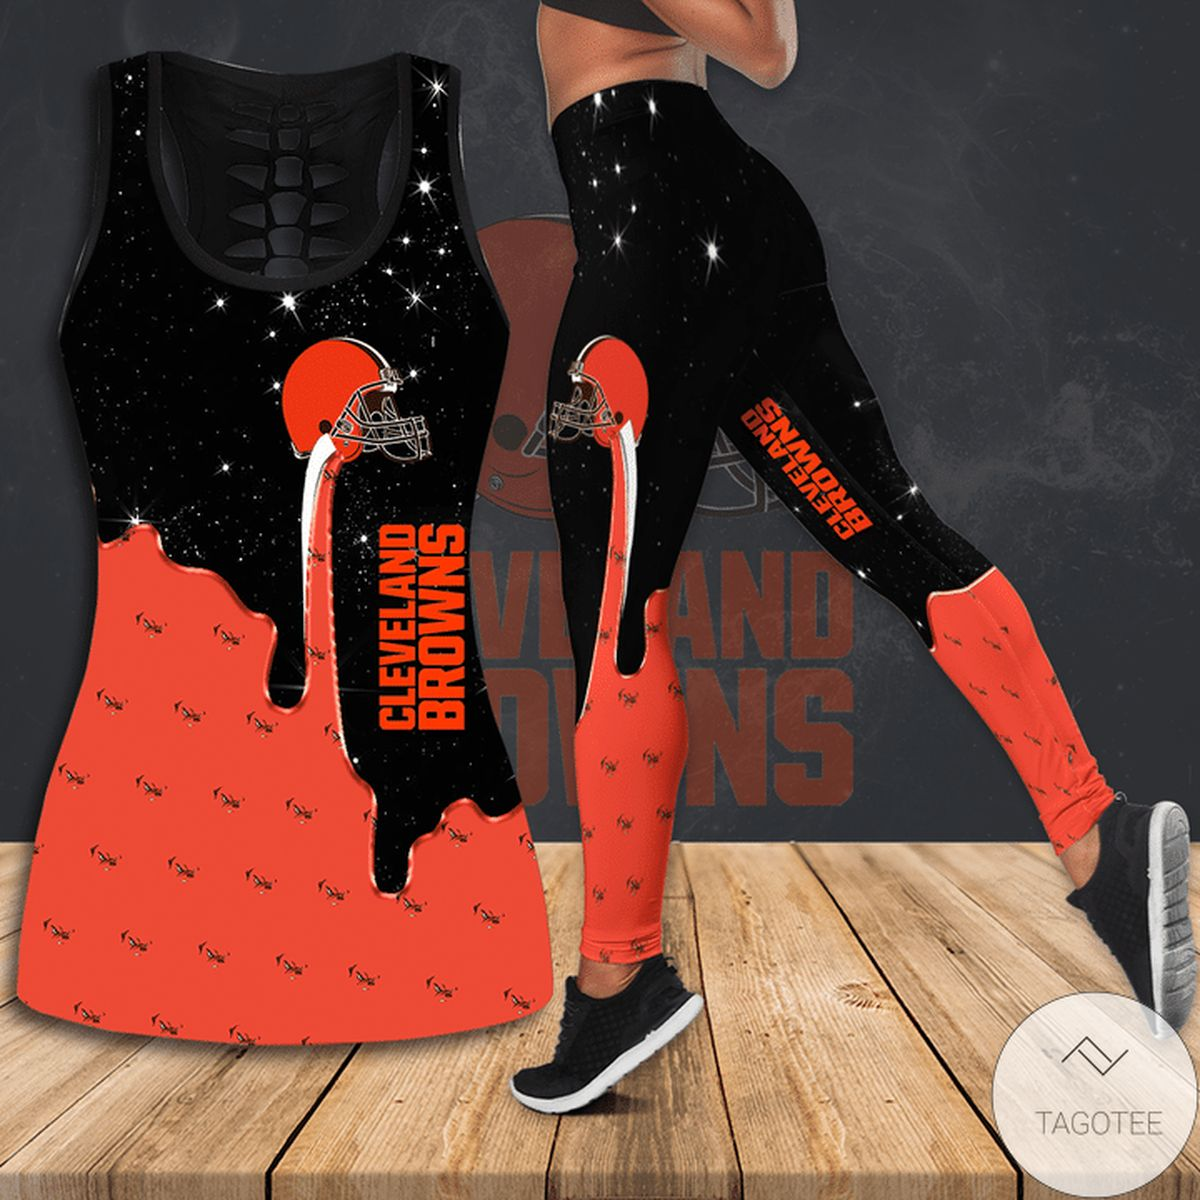 Cleveland Browns Hollow Tank Top And Leggings